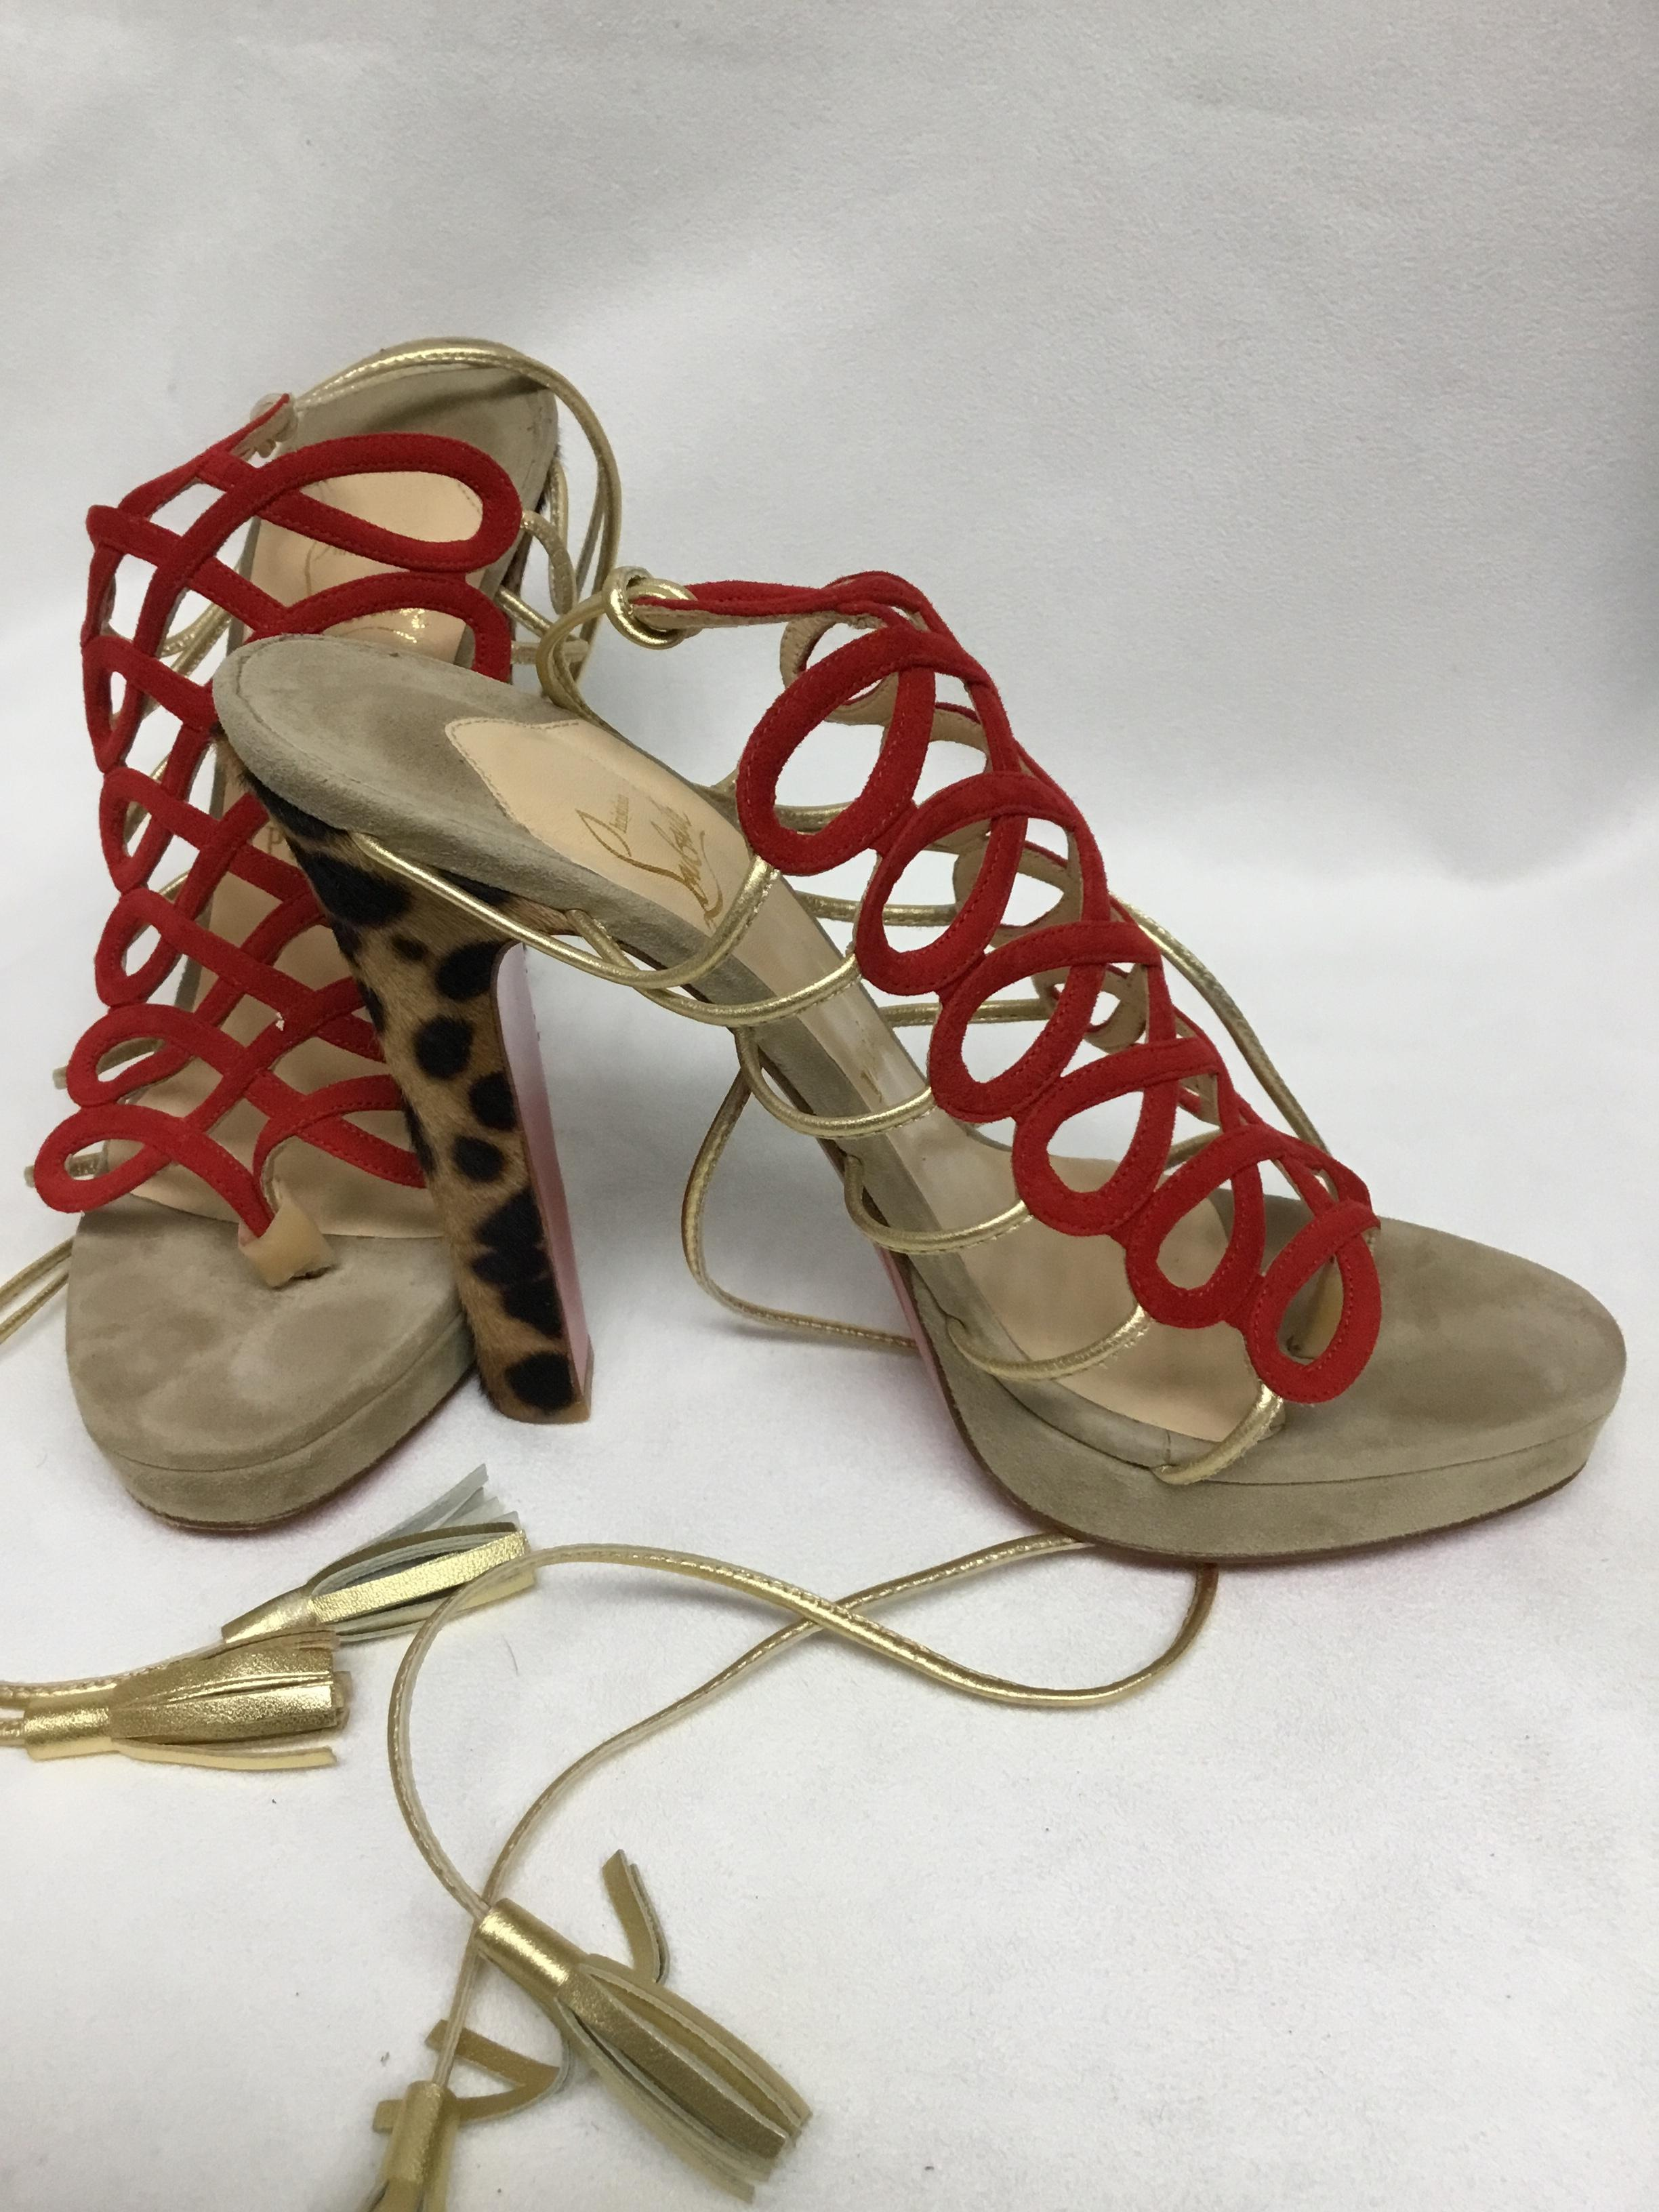 2ef672bad32 Christian Christian Christian Louboutin Red Suede with Animal Print Pony  Skin Heel. Sandals Size EU 38.5 (Approx. US 8.5) Regular (M